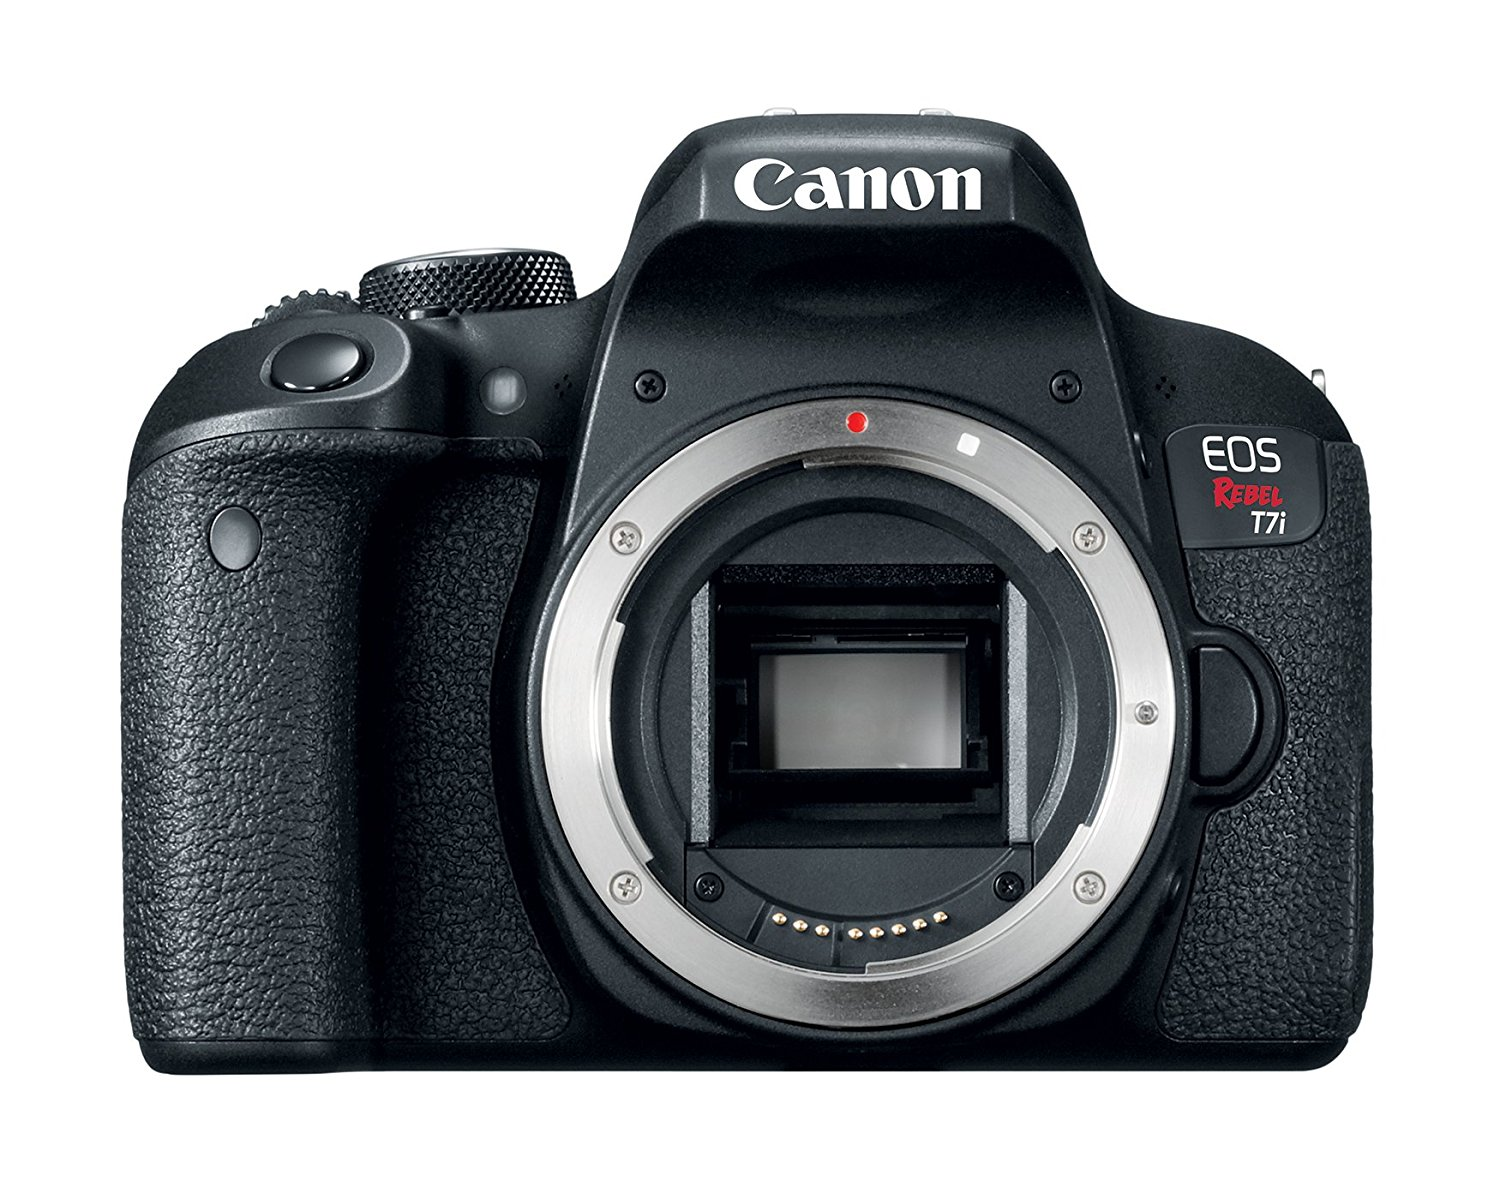 Canon EOS Rebel T7i images